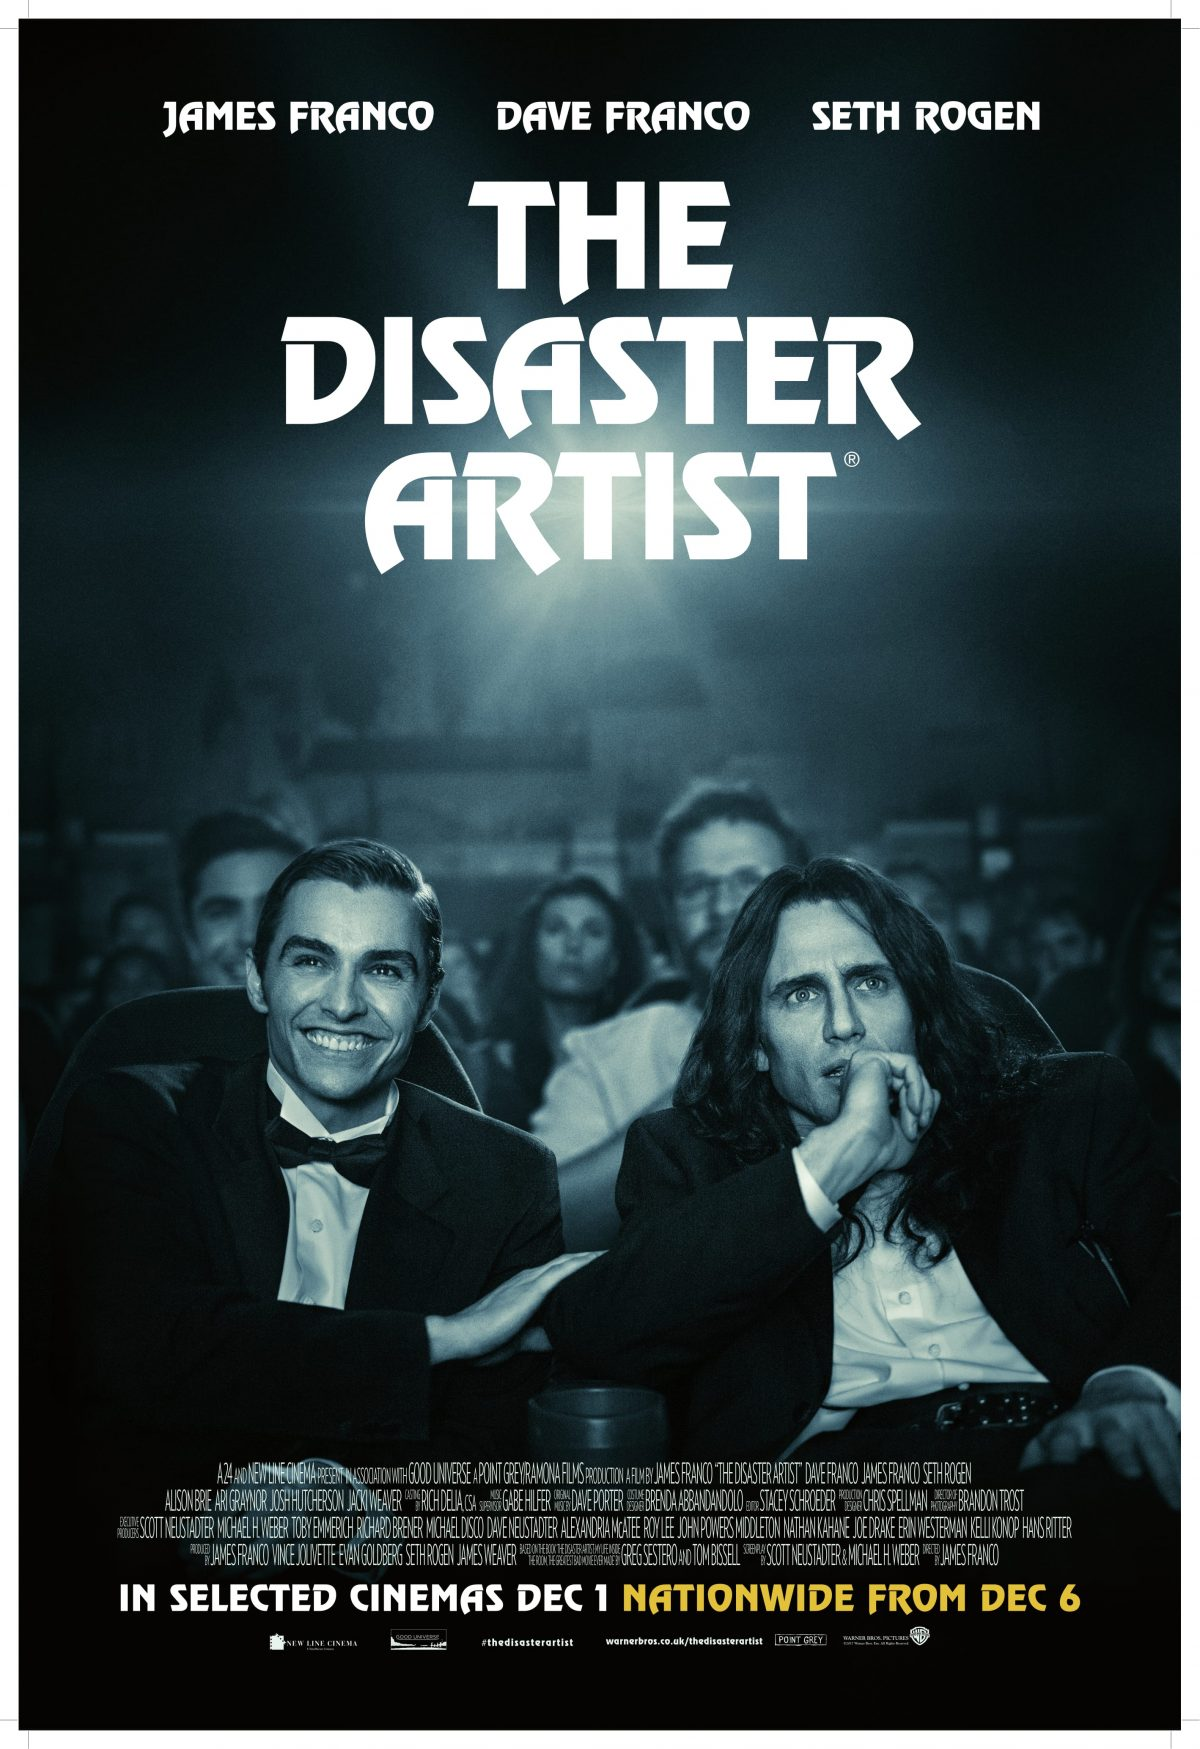 Directed by James Franco - Written by Scott Neustadter and Michael H. Weber - Based on the book by Greg Sestero and Tim Bissell